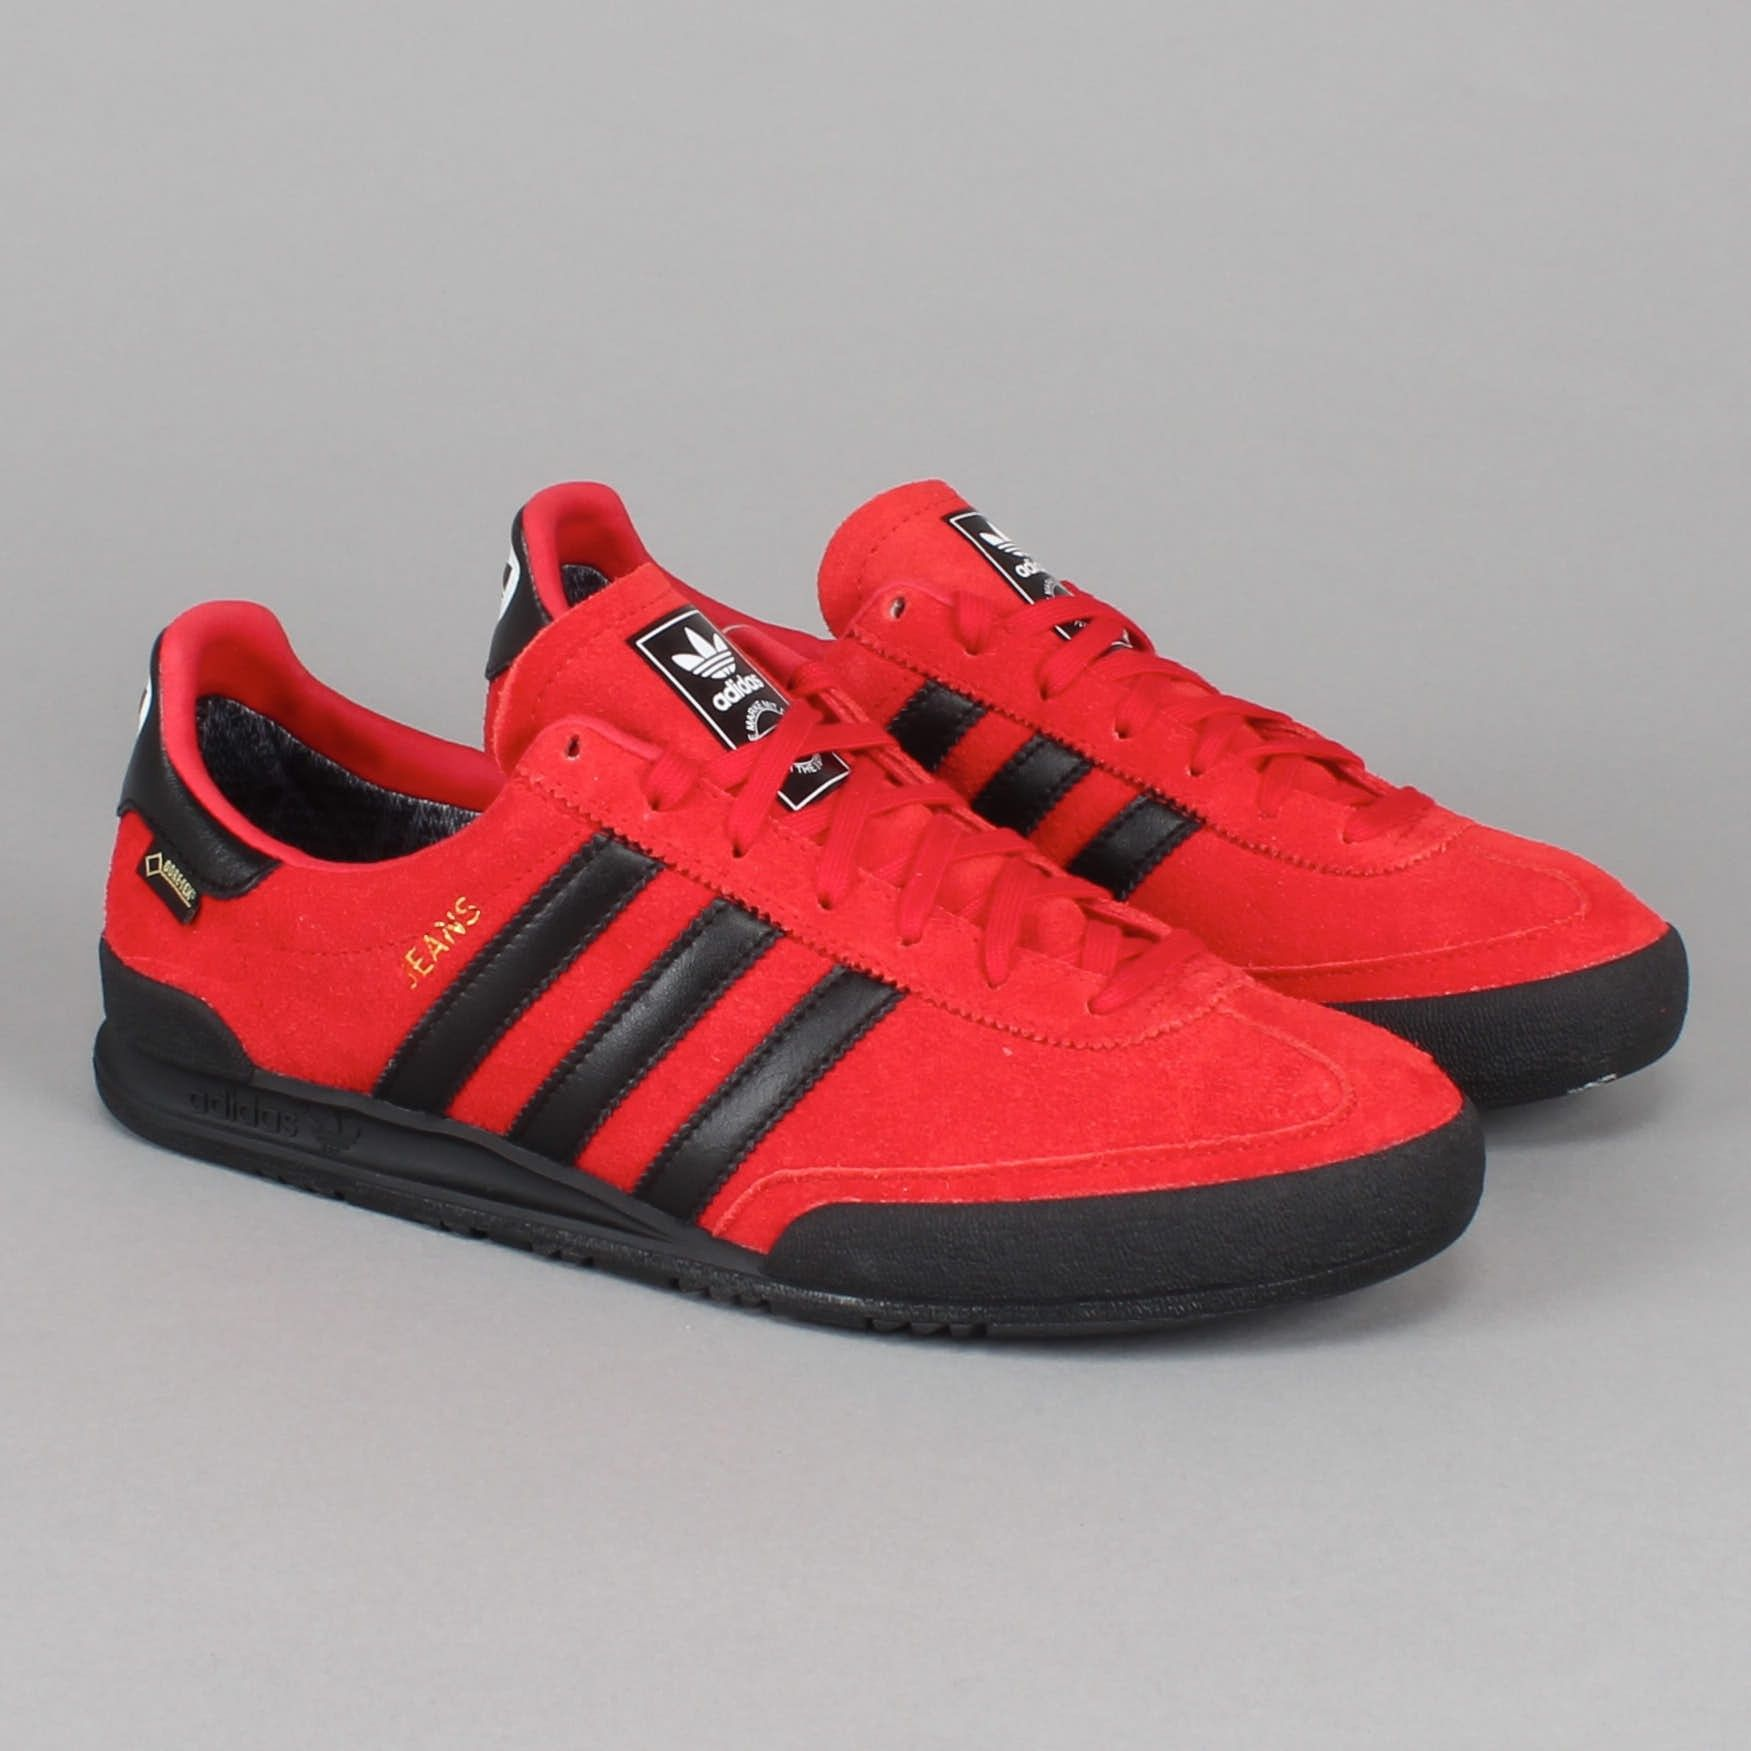 premium selection f3f1f 68402 adidas jeans shoes